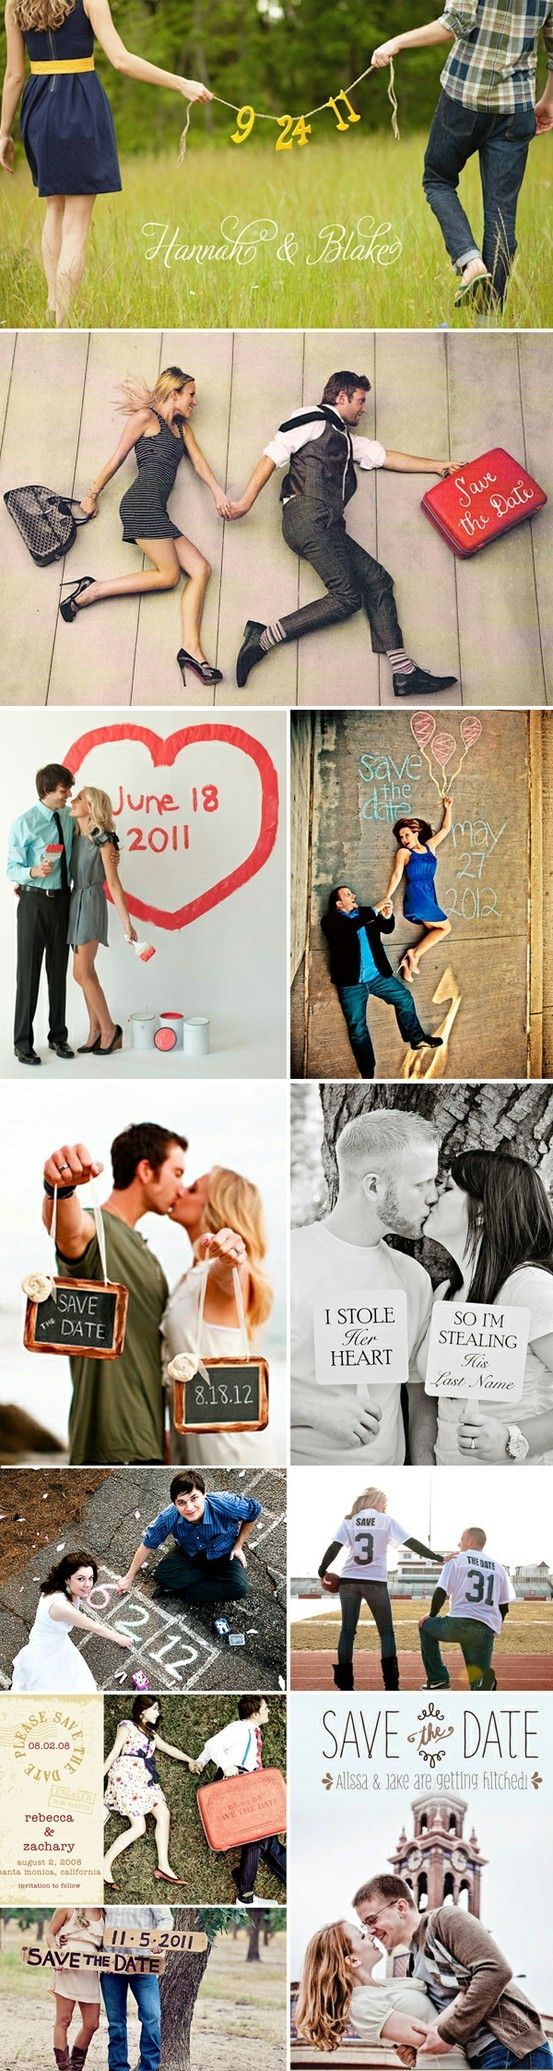 56 Save the Date Ideas. I love the one in the bottom right corner.